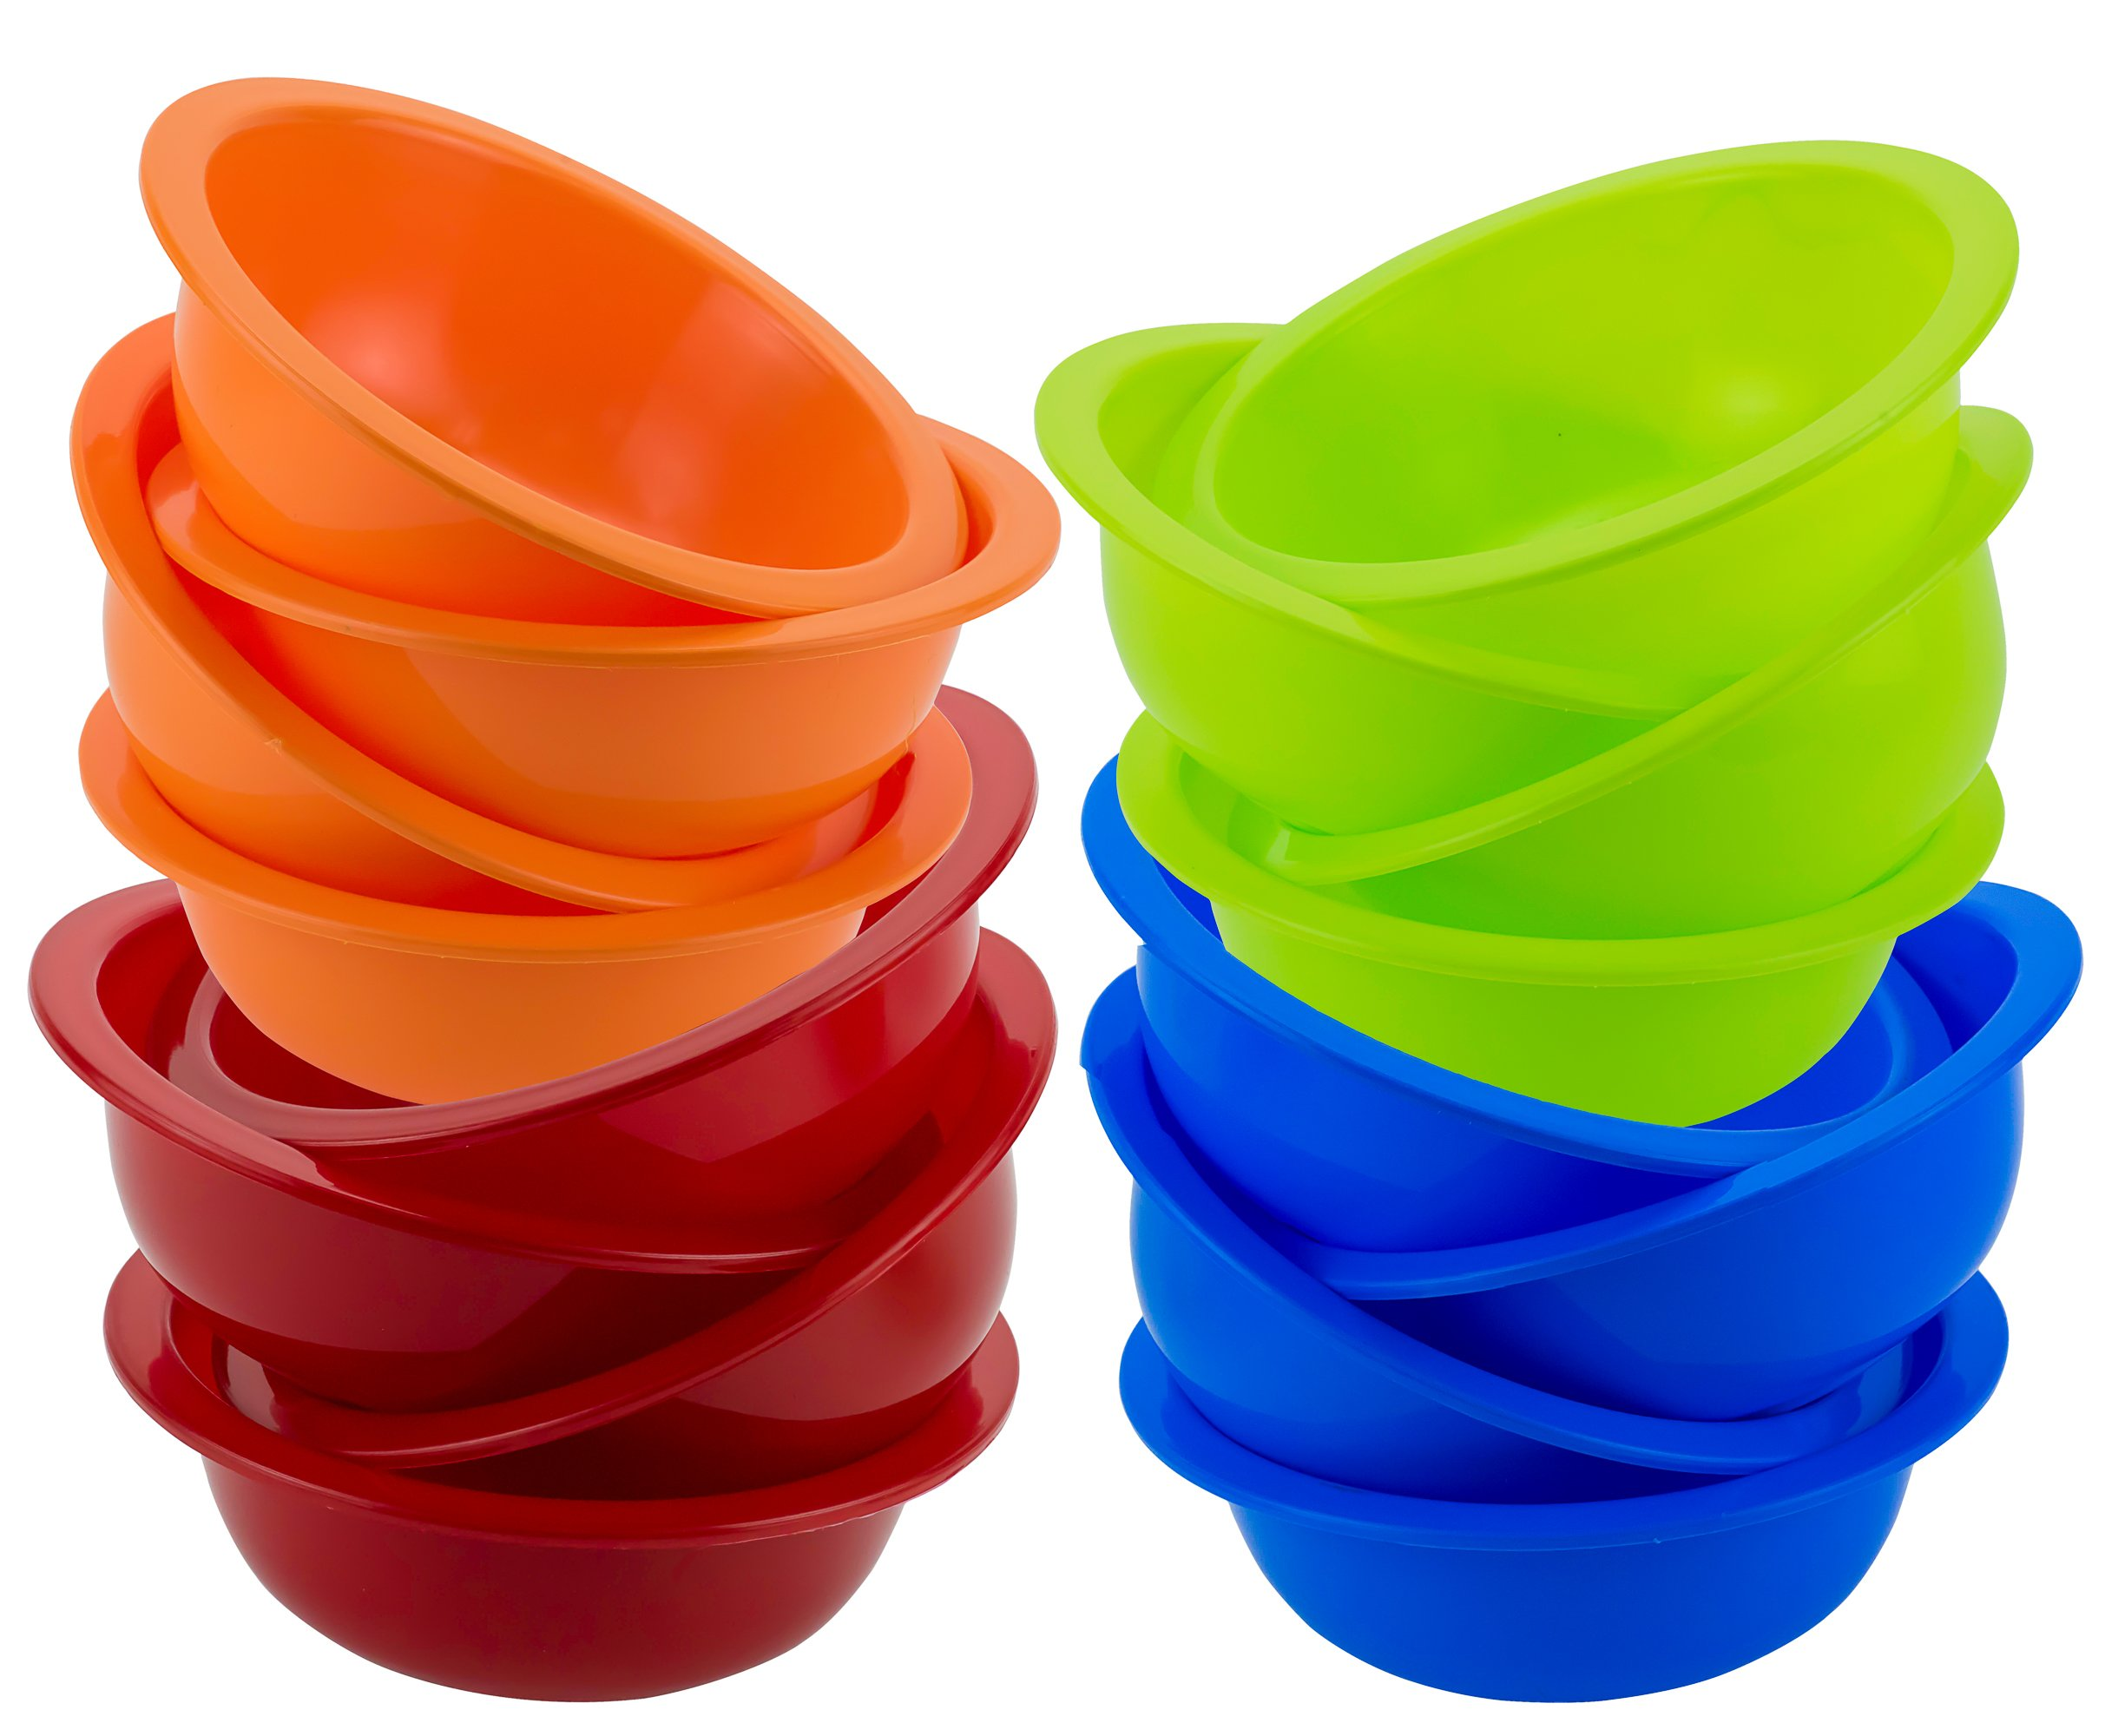 DecorRack Set of 16 Cereal Bowls, Soup Bowl for Salad, Fruit, Dessert, Snack, Small Serving and Mixing Bowls, - BPA Free - Plastic, Shatter Proof and Unbreakable, Assorted Colors, 28 oz (Set of 16)